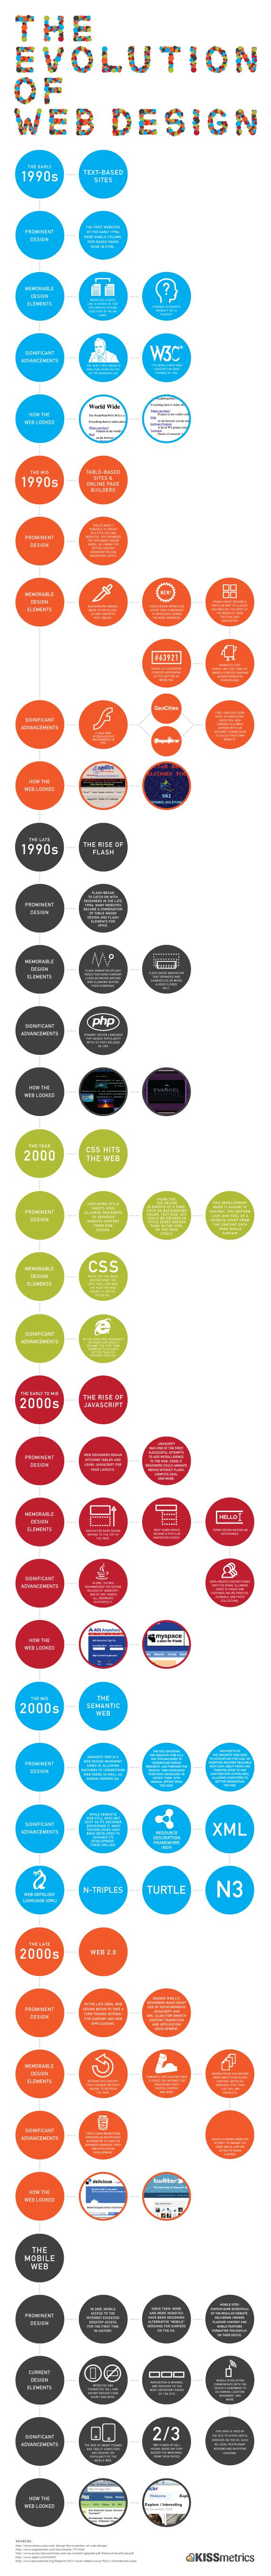 Where is it going next? History & Evolution of Web Design #infographic